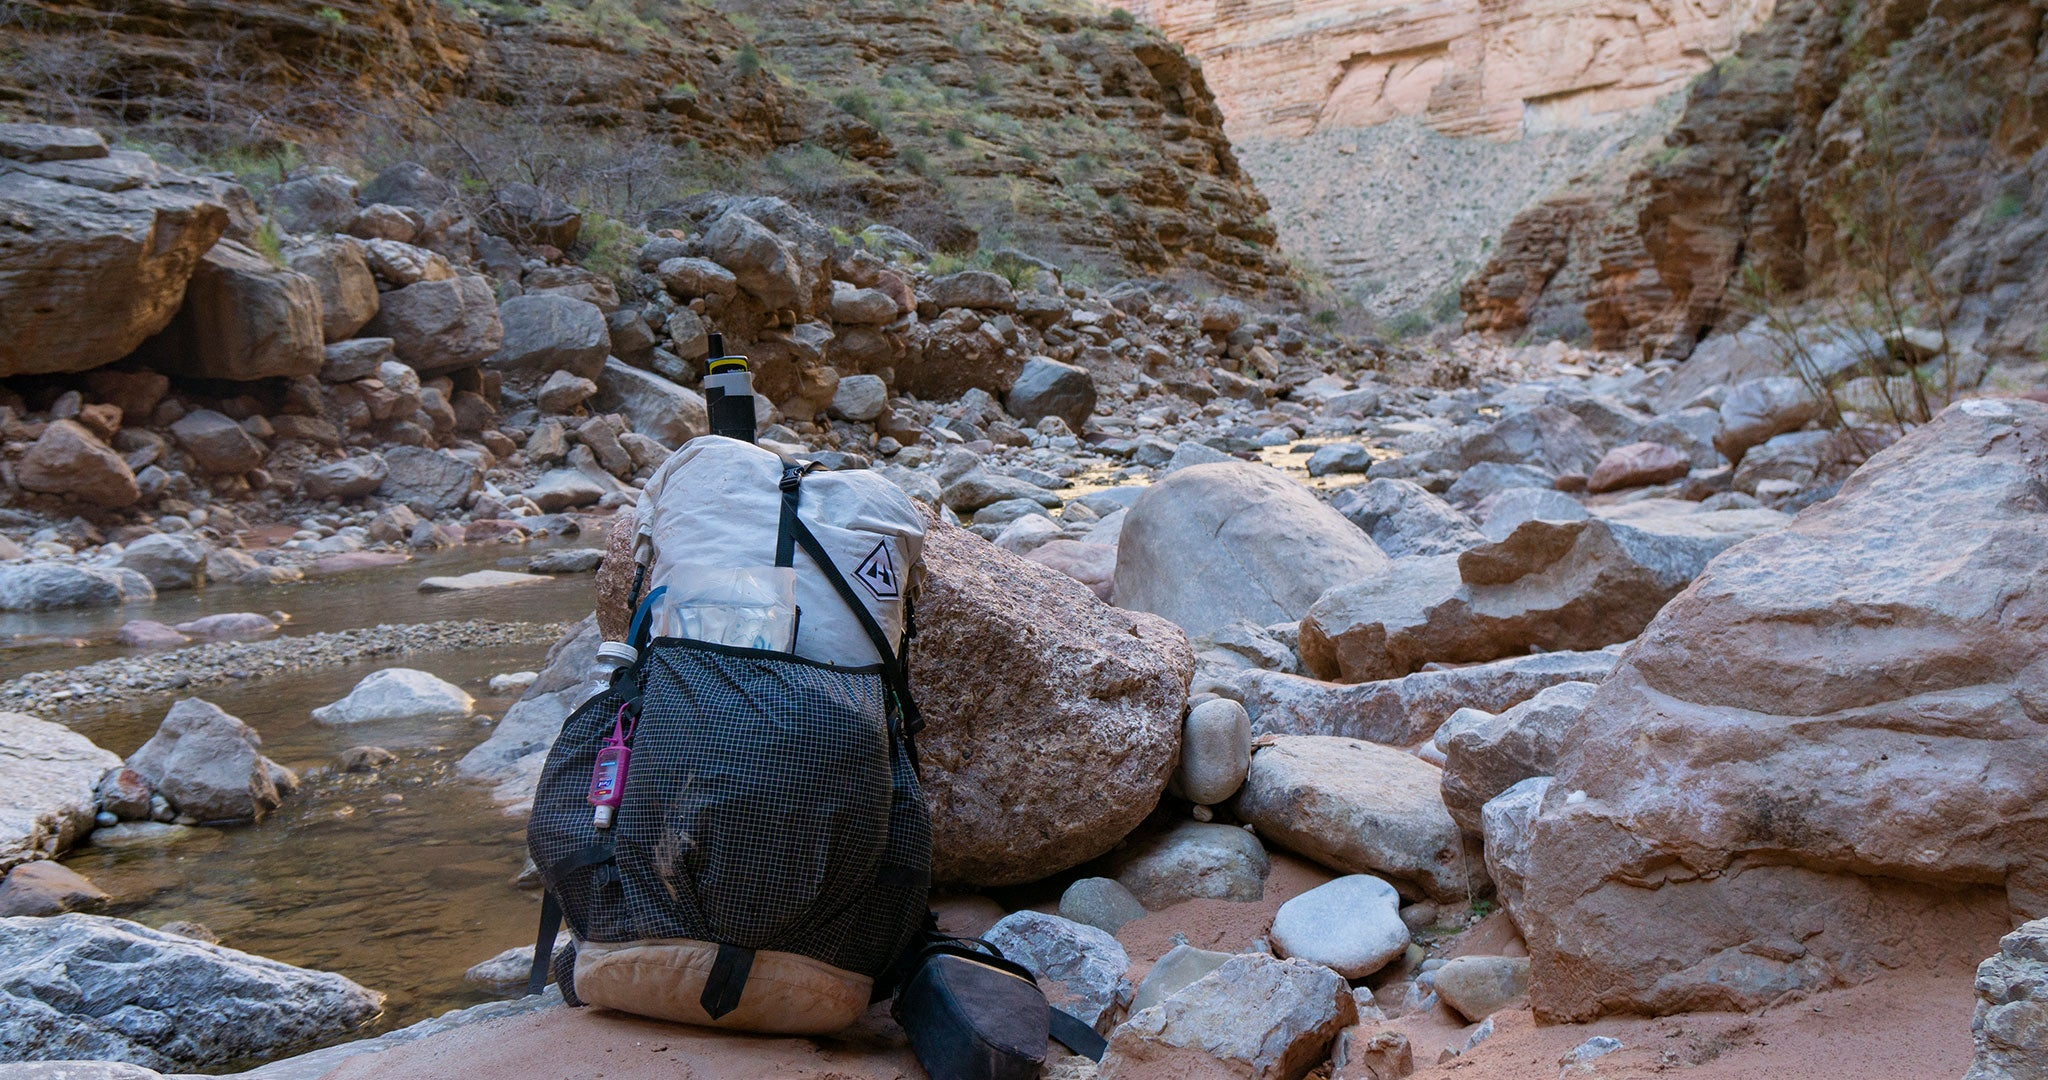 Long-Distance, Lightweight Thru Hiking Gear List (for the Grand Canyon)